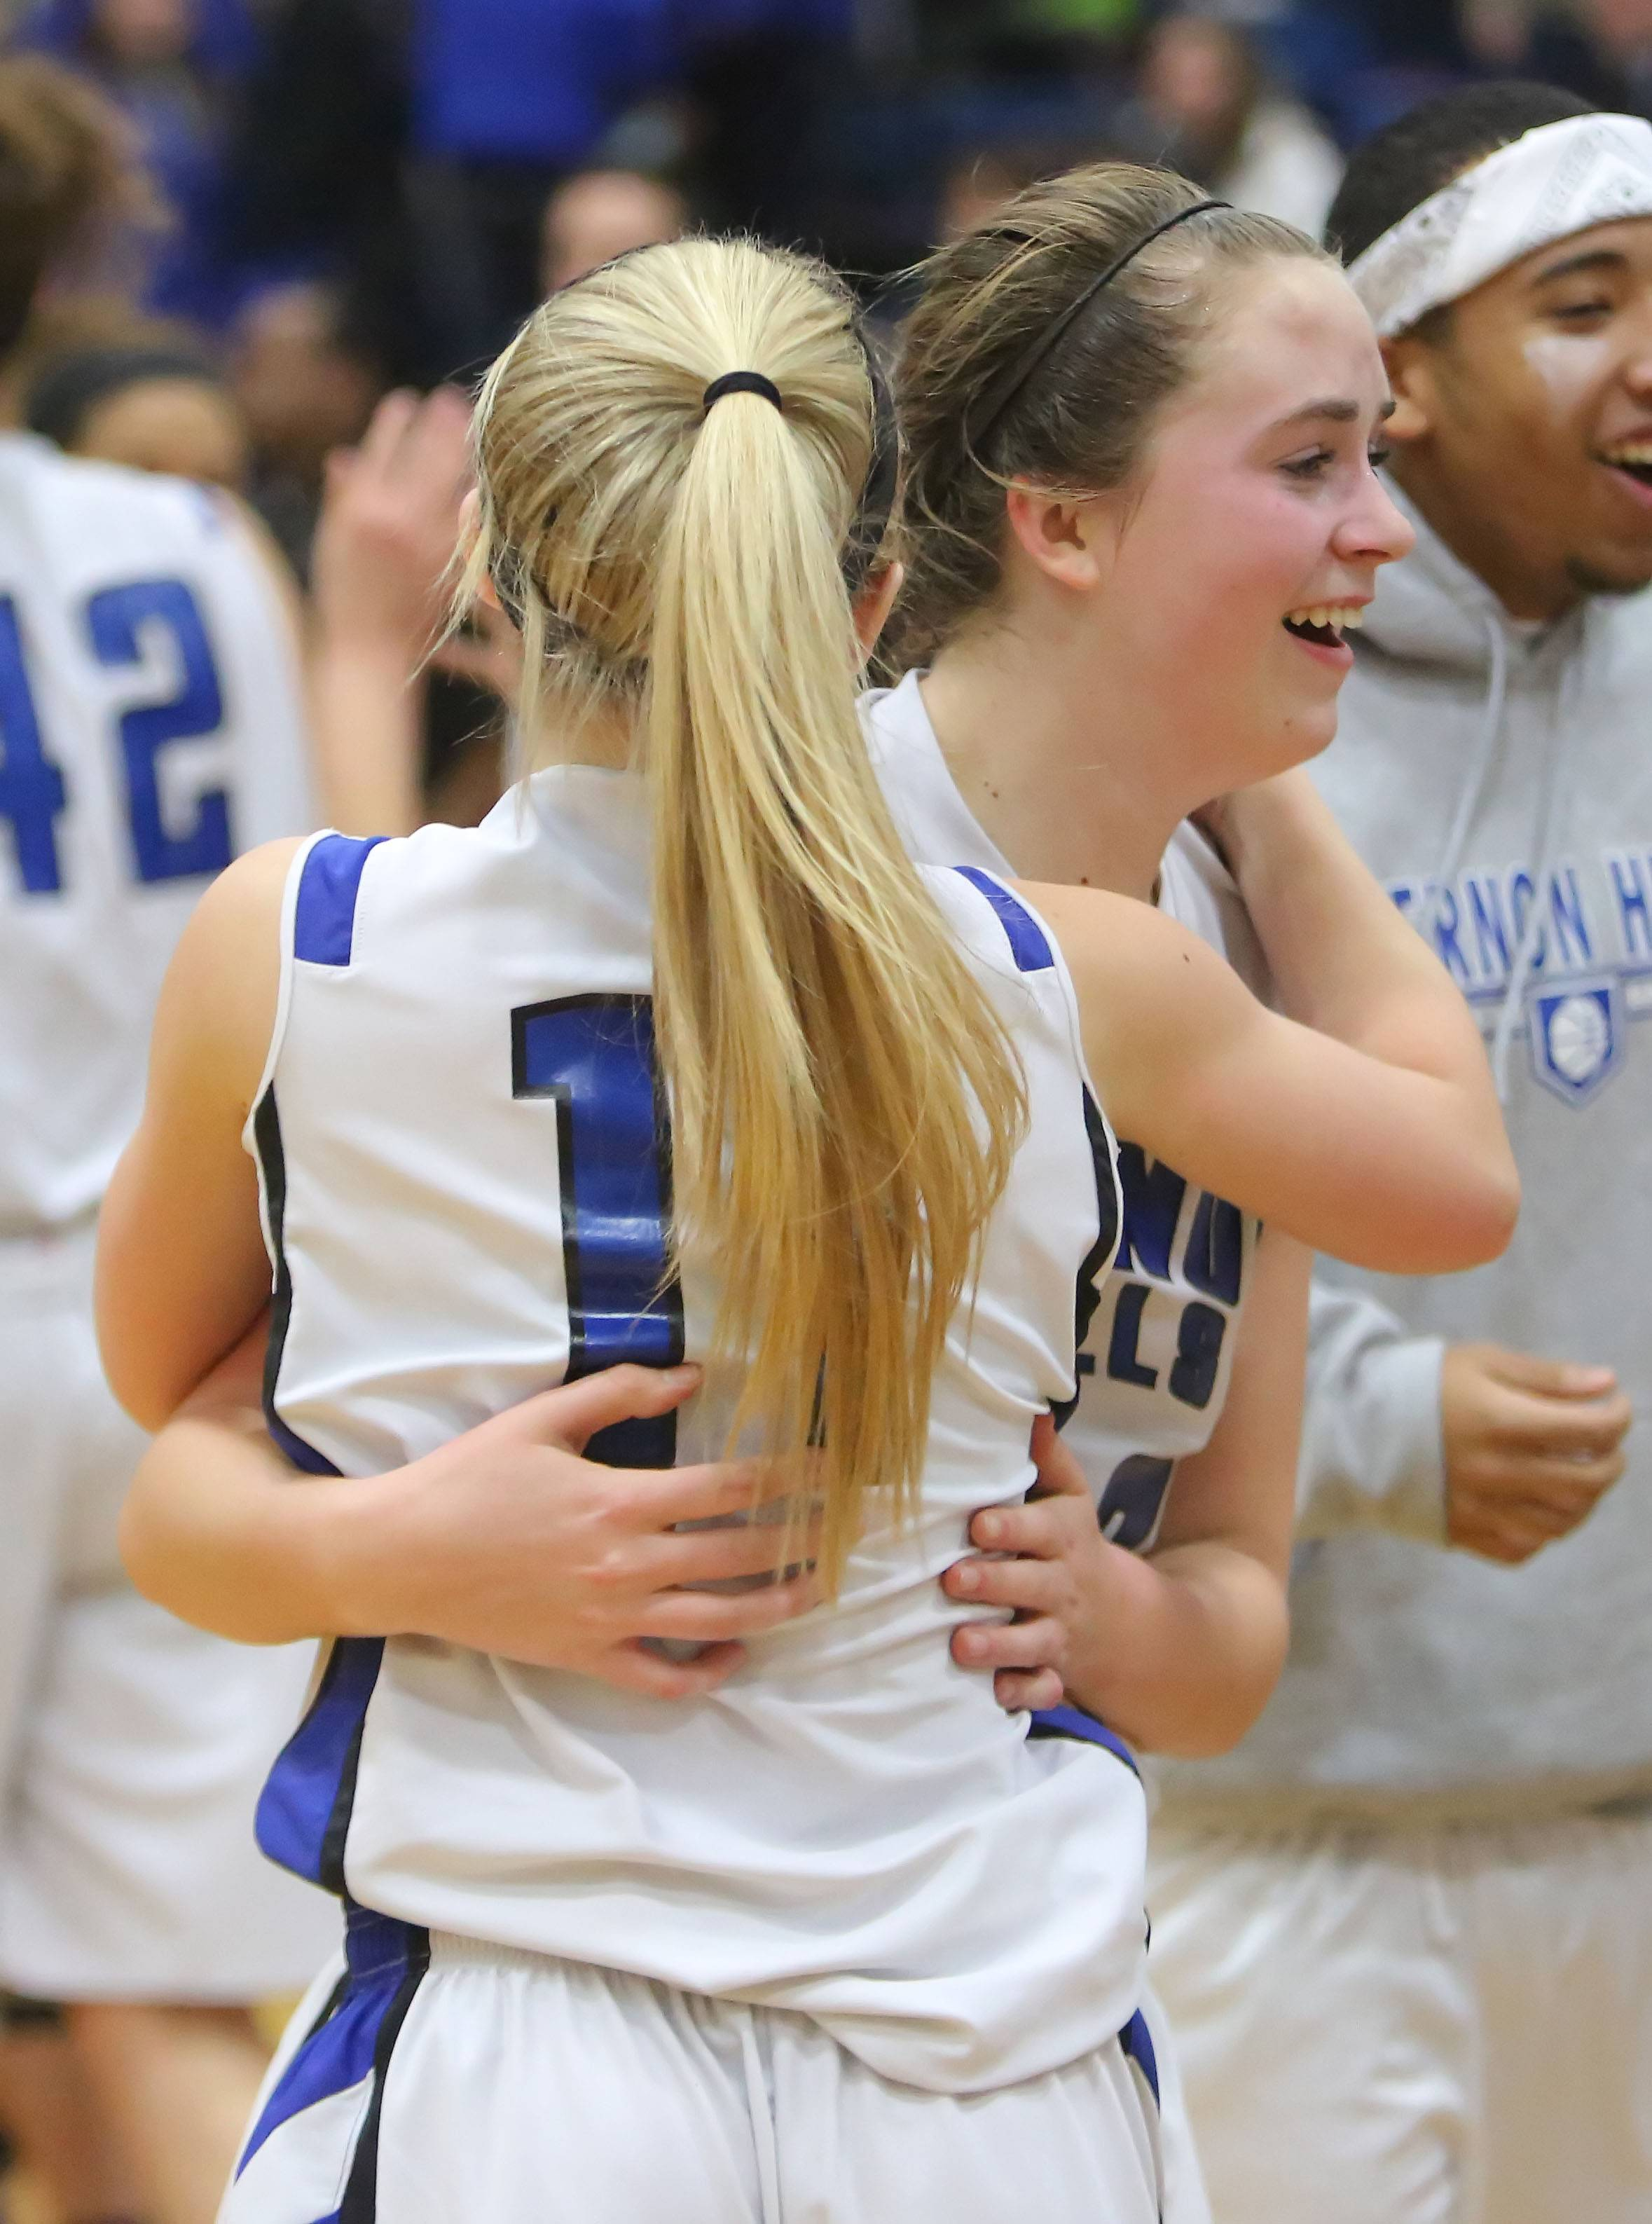 Vernon Hills' Haley Lieberman, left, hugs Monica Bahlmann, who made a 3-pointer near the end of the game to beat Zion-Benton in the North Suburban Conference championship game Wednesday night at Vernon Hills.